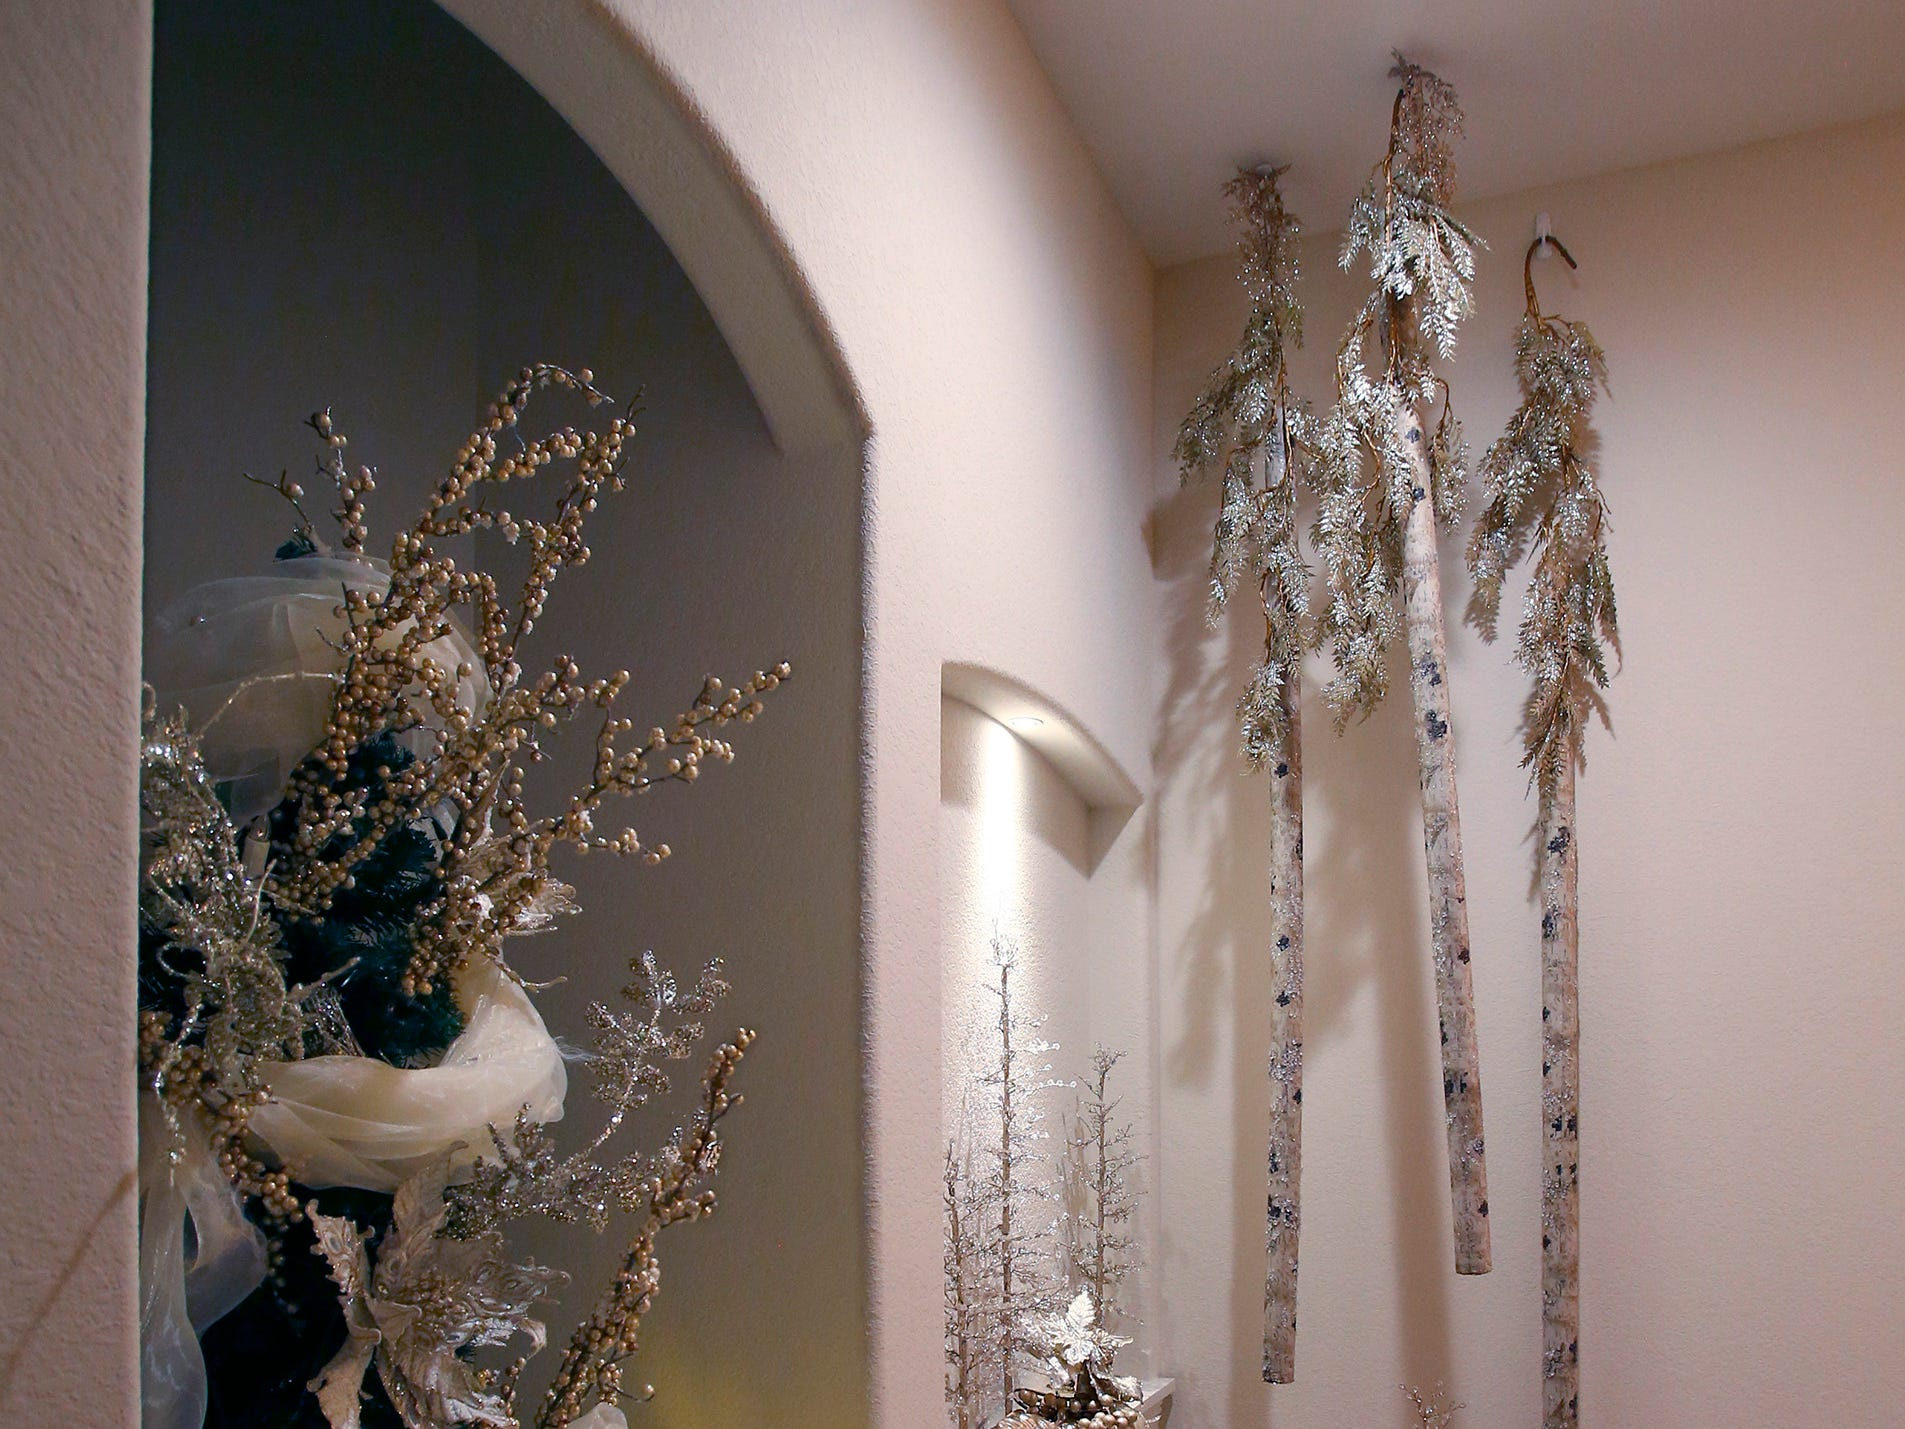 Birch trees hang from the ceiling of a second-floor bathroom in the 26th annual Christmas Fantasy House with 18 rooms decorated by more than 16 area decorators for benefit Ronald McDonald House Charities Eastern Wisconsin. The Fantasy house will be open 10 a.m. to 8 p.m. on Nov. 9, and 10 a.m. to 6 p.m. on Nov. 10 and 11. Parking and shuttle to the House is at Ridgewood Baptist Church, 2720 Lilly Road, Brookfield. Tickets are $20 at the door.